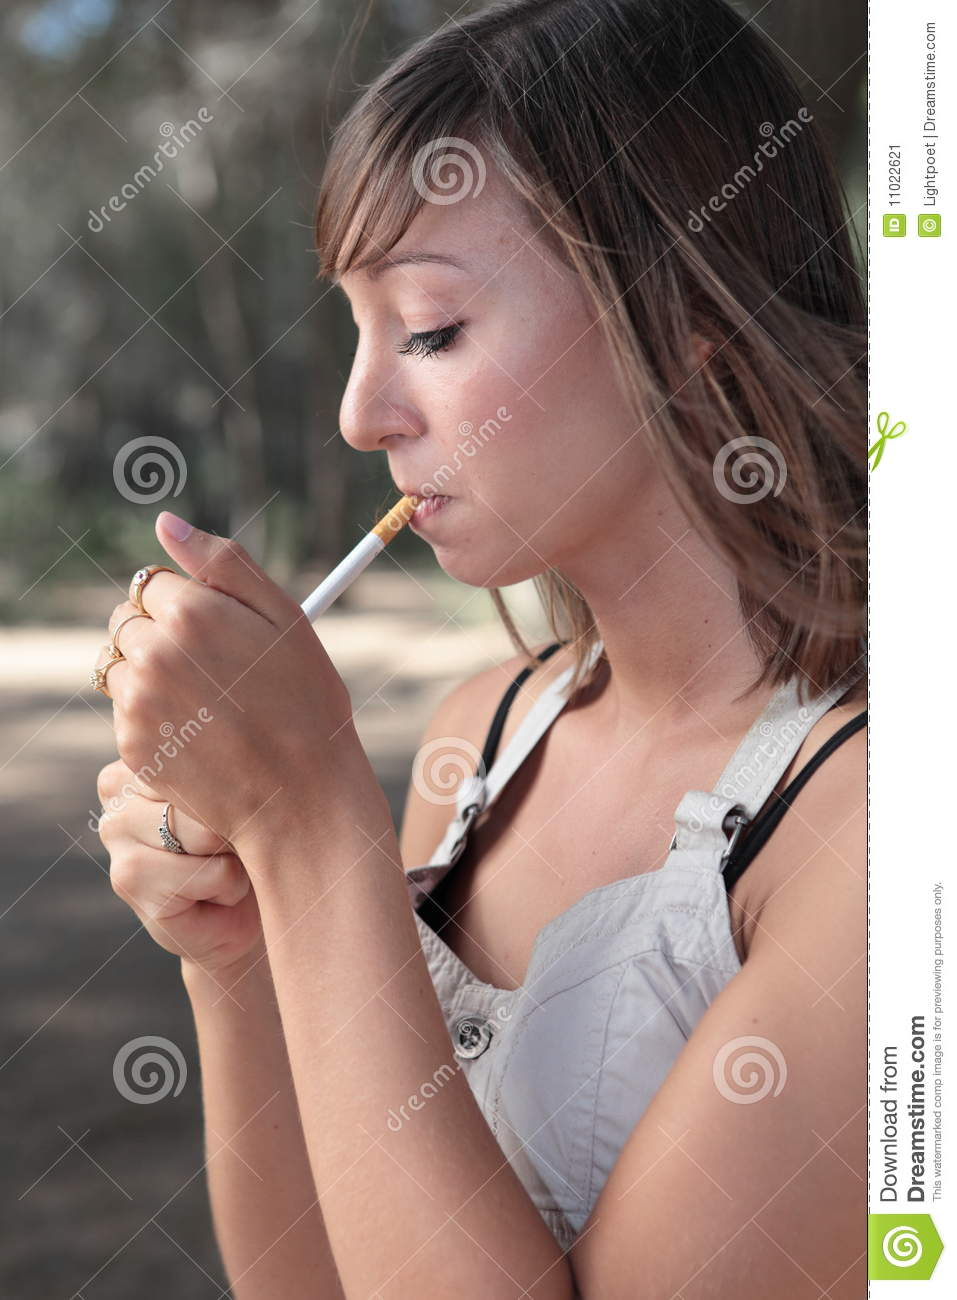 Royalty-Free Stock Photo. Download Woman Lighting A Cigarette ...  sc 1 st  Dreamstime.com & Woman Lighting A Cigarette Stock Image - Image: 11022621 azcodes.com